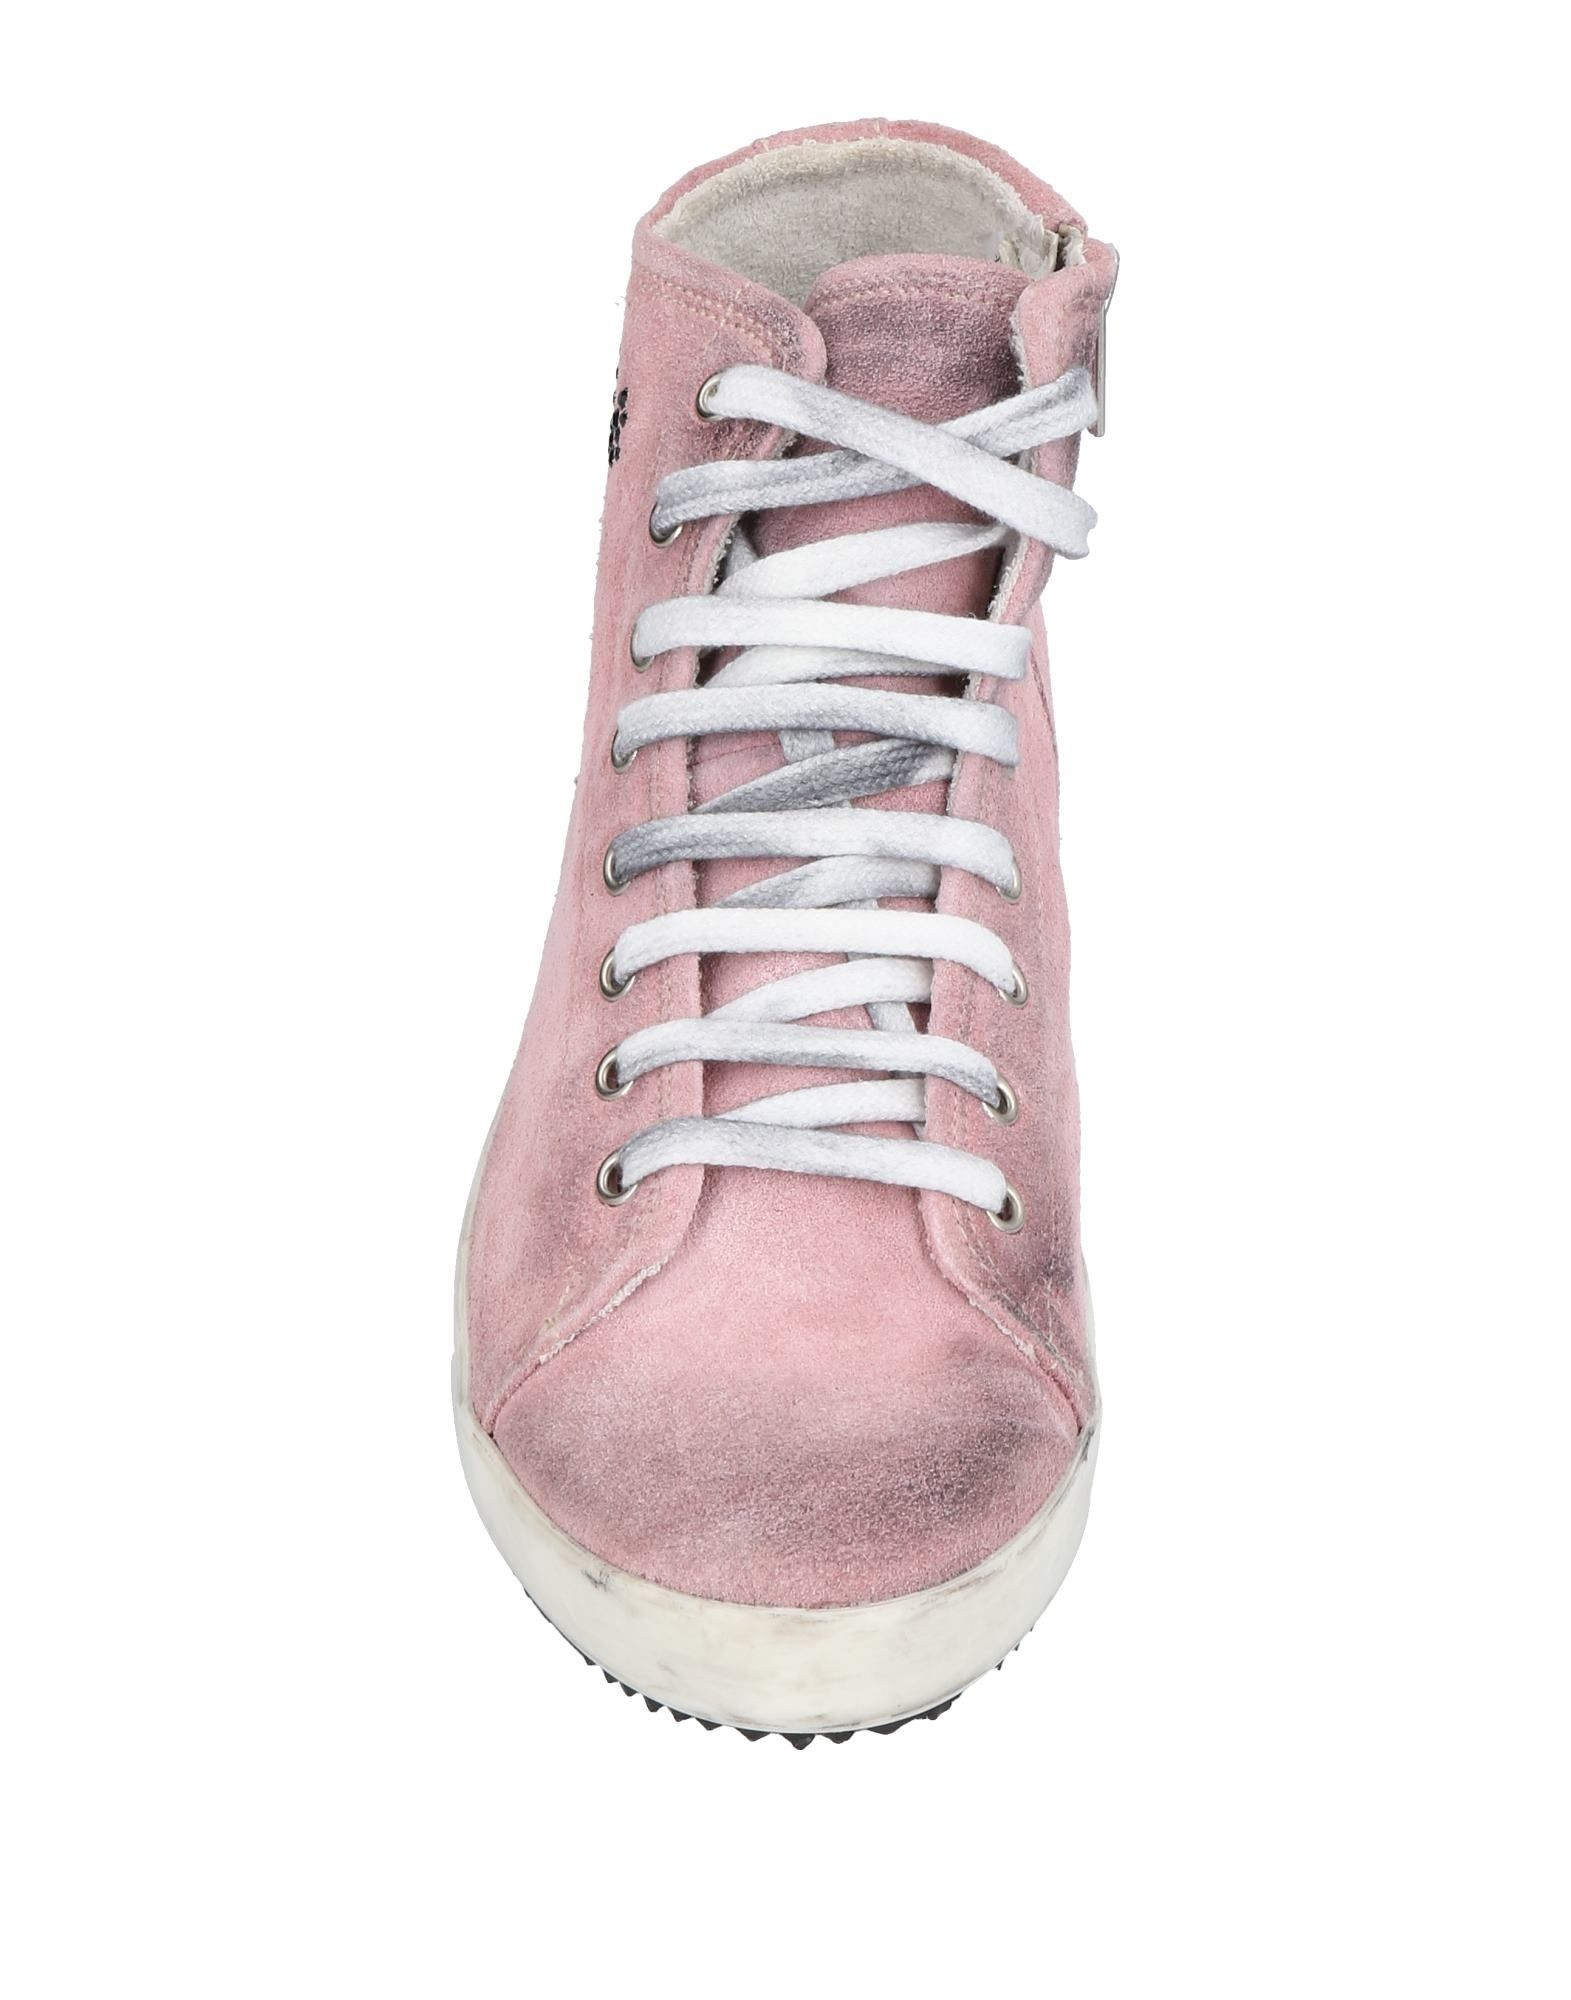 Moda Sneakers Happiness Happiness Sneakers Donna - 11468959WB ddb3f8